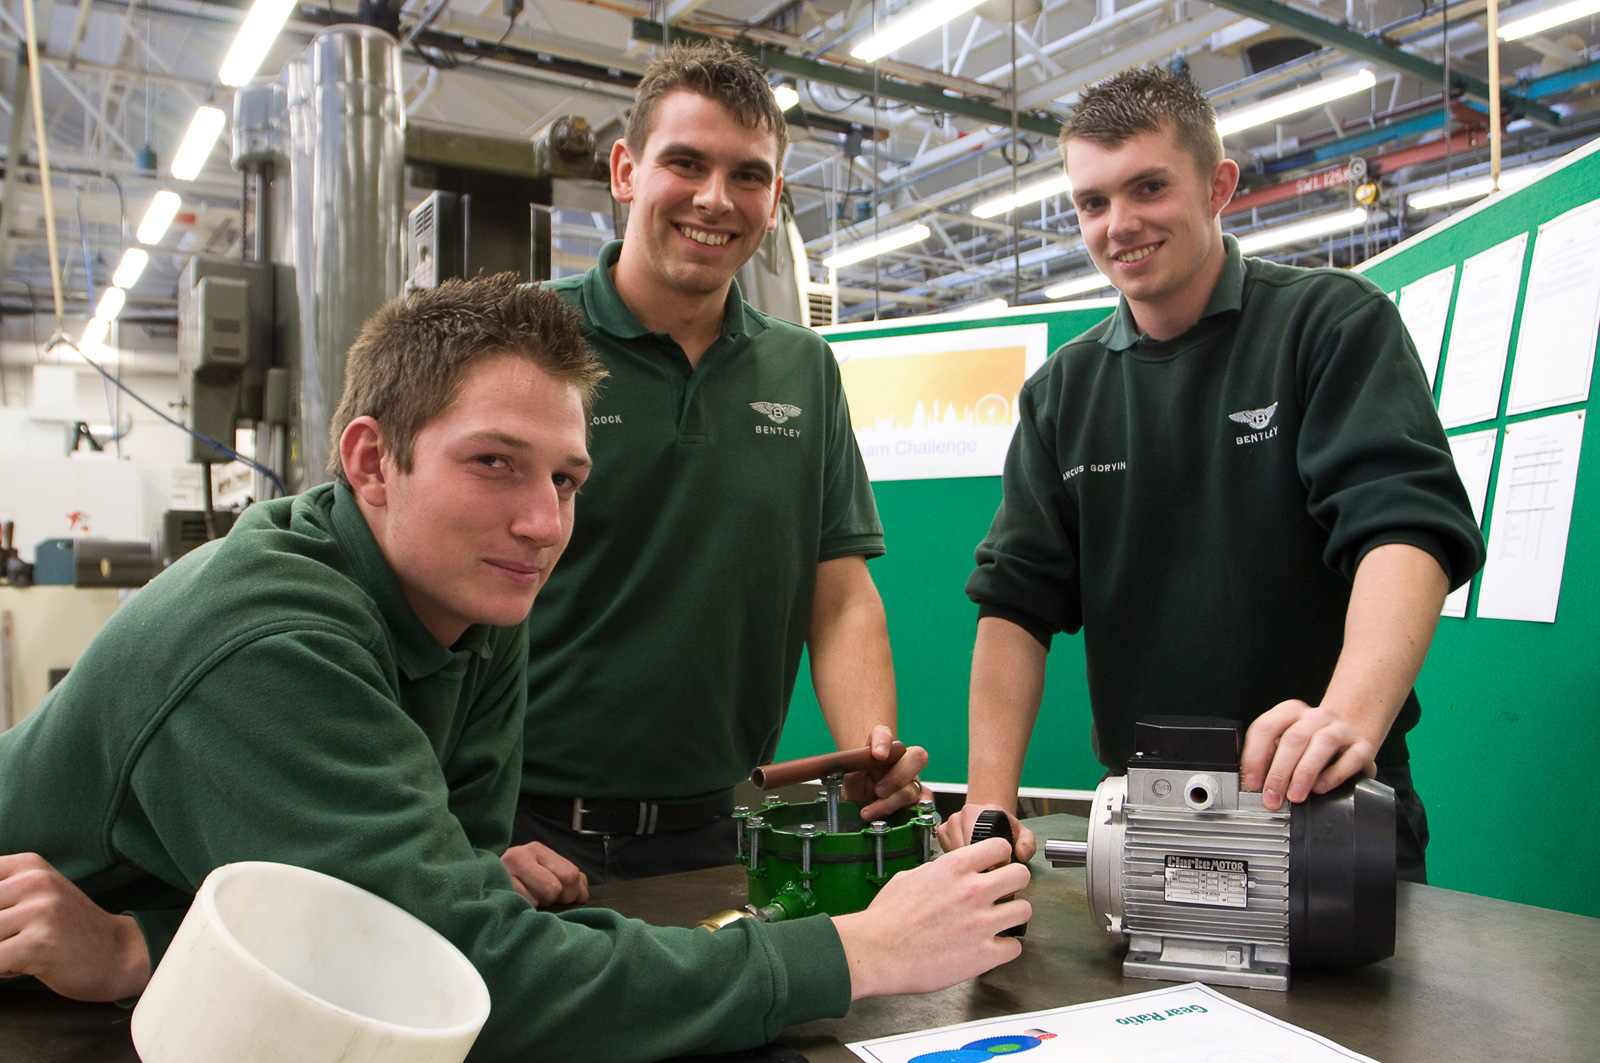 Bentley-craft-apprentices-Reece-Jenks-,-Paul-Alcock-and-Marcus-Gorvin-in-the-Bentley-tool-room-training-for-the-manufacturing-team-challenge-at-World-Skills-2011